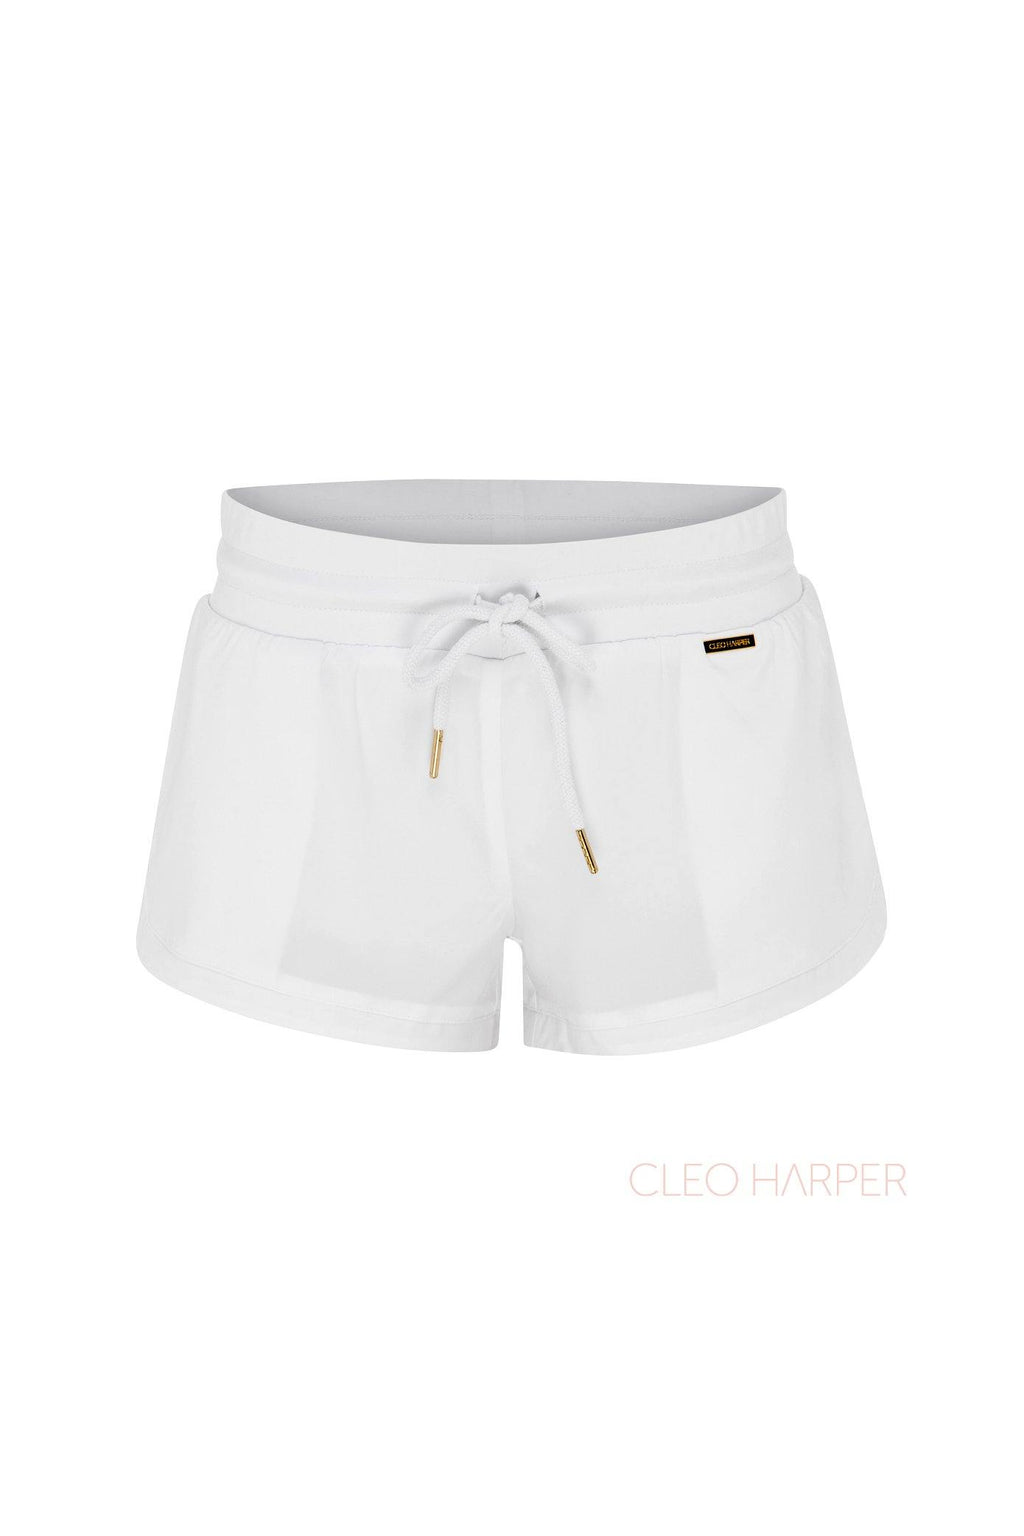 DASH SHORT - WHITE